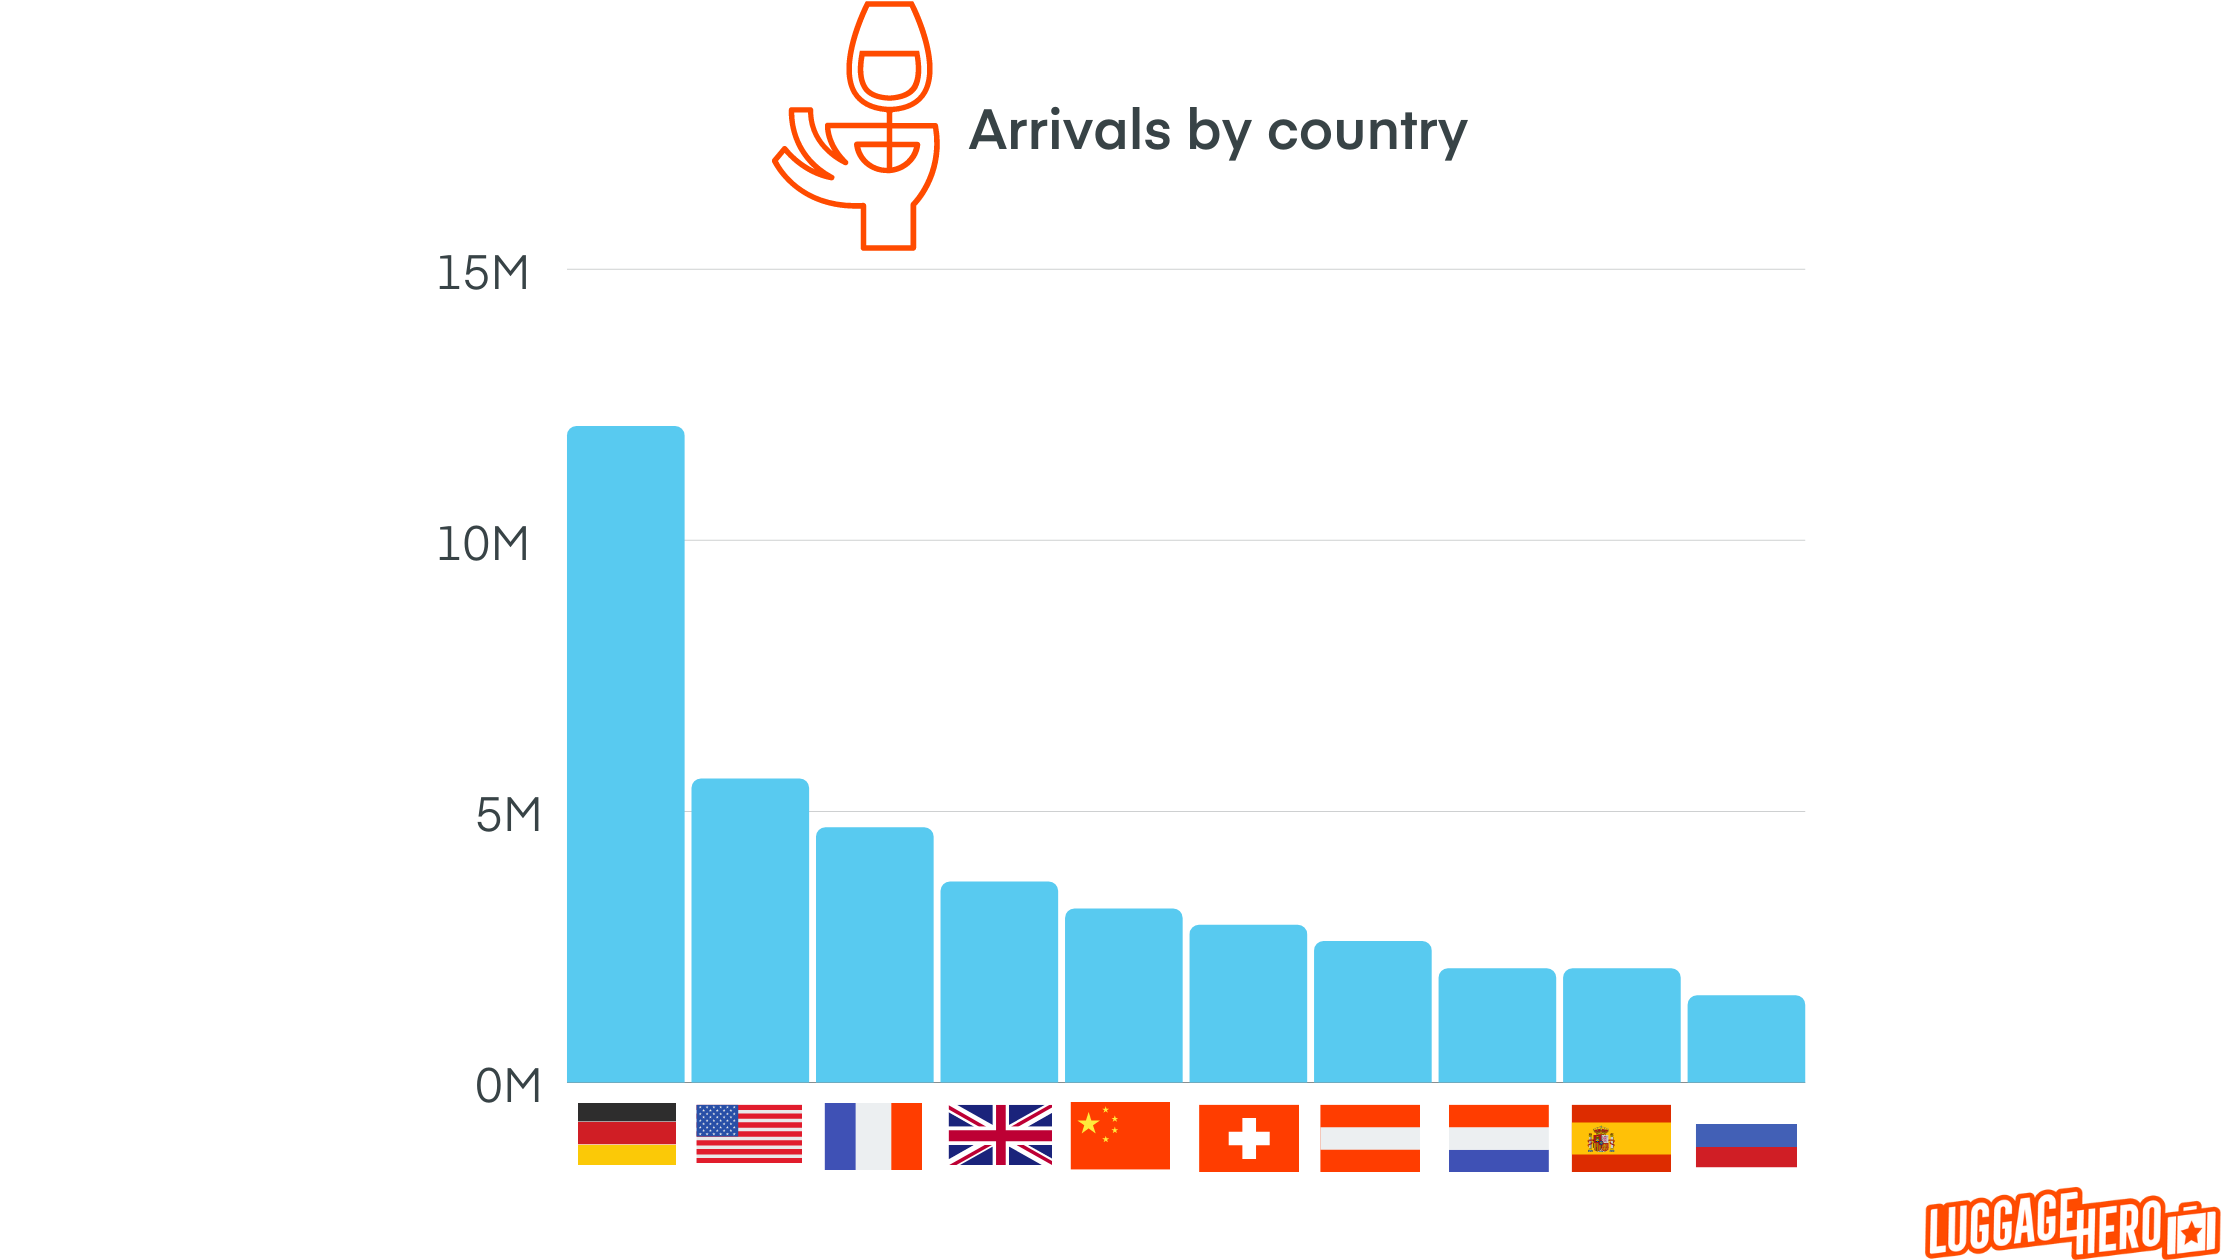 Italy travel statistics - Arrivals by country